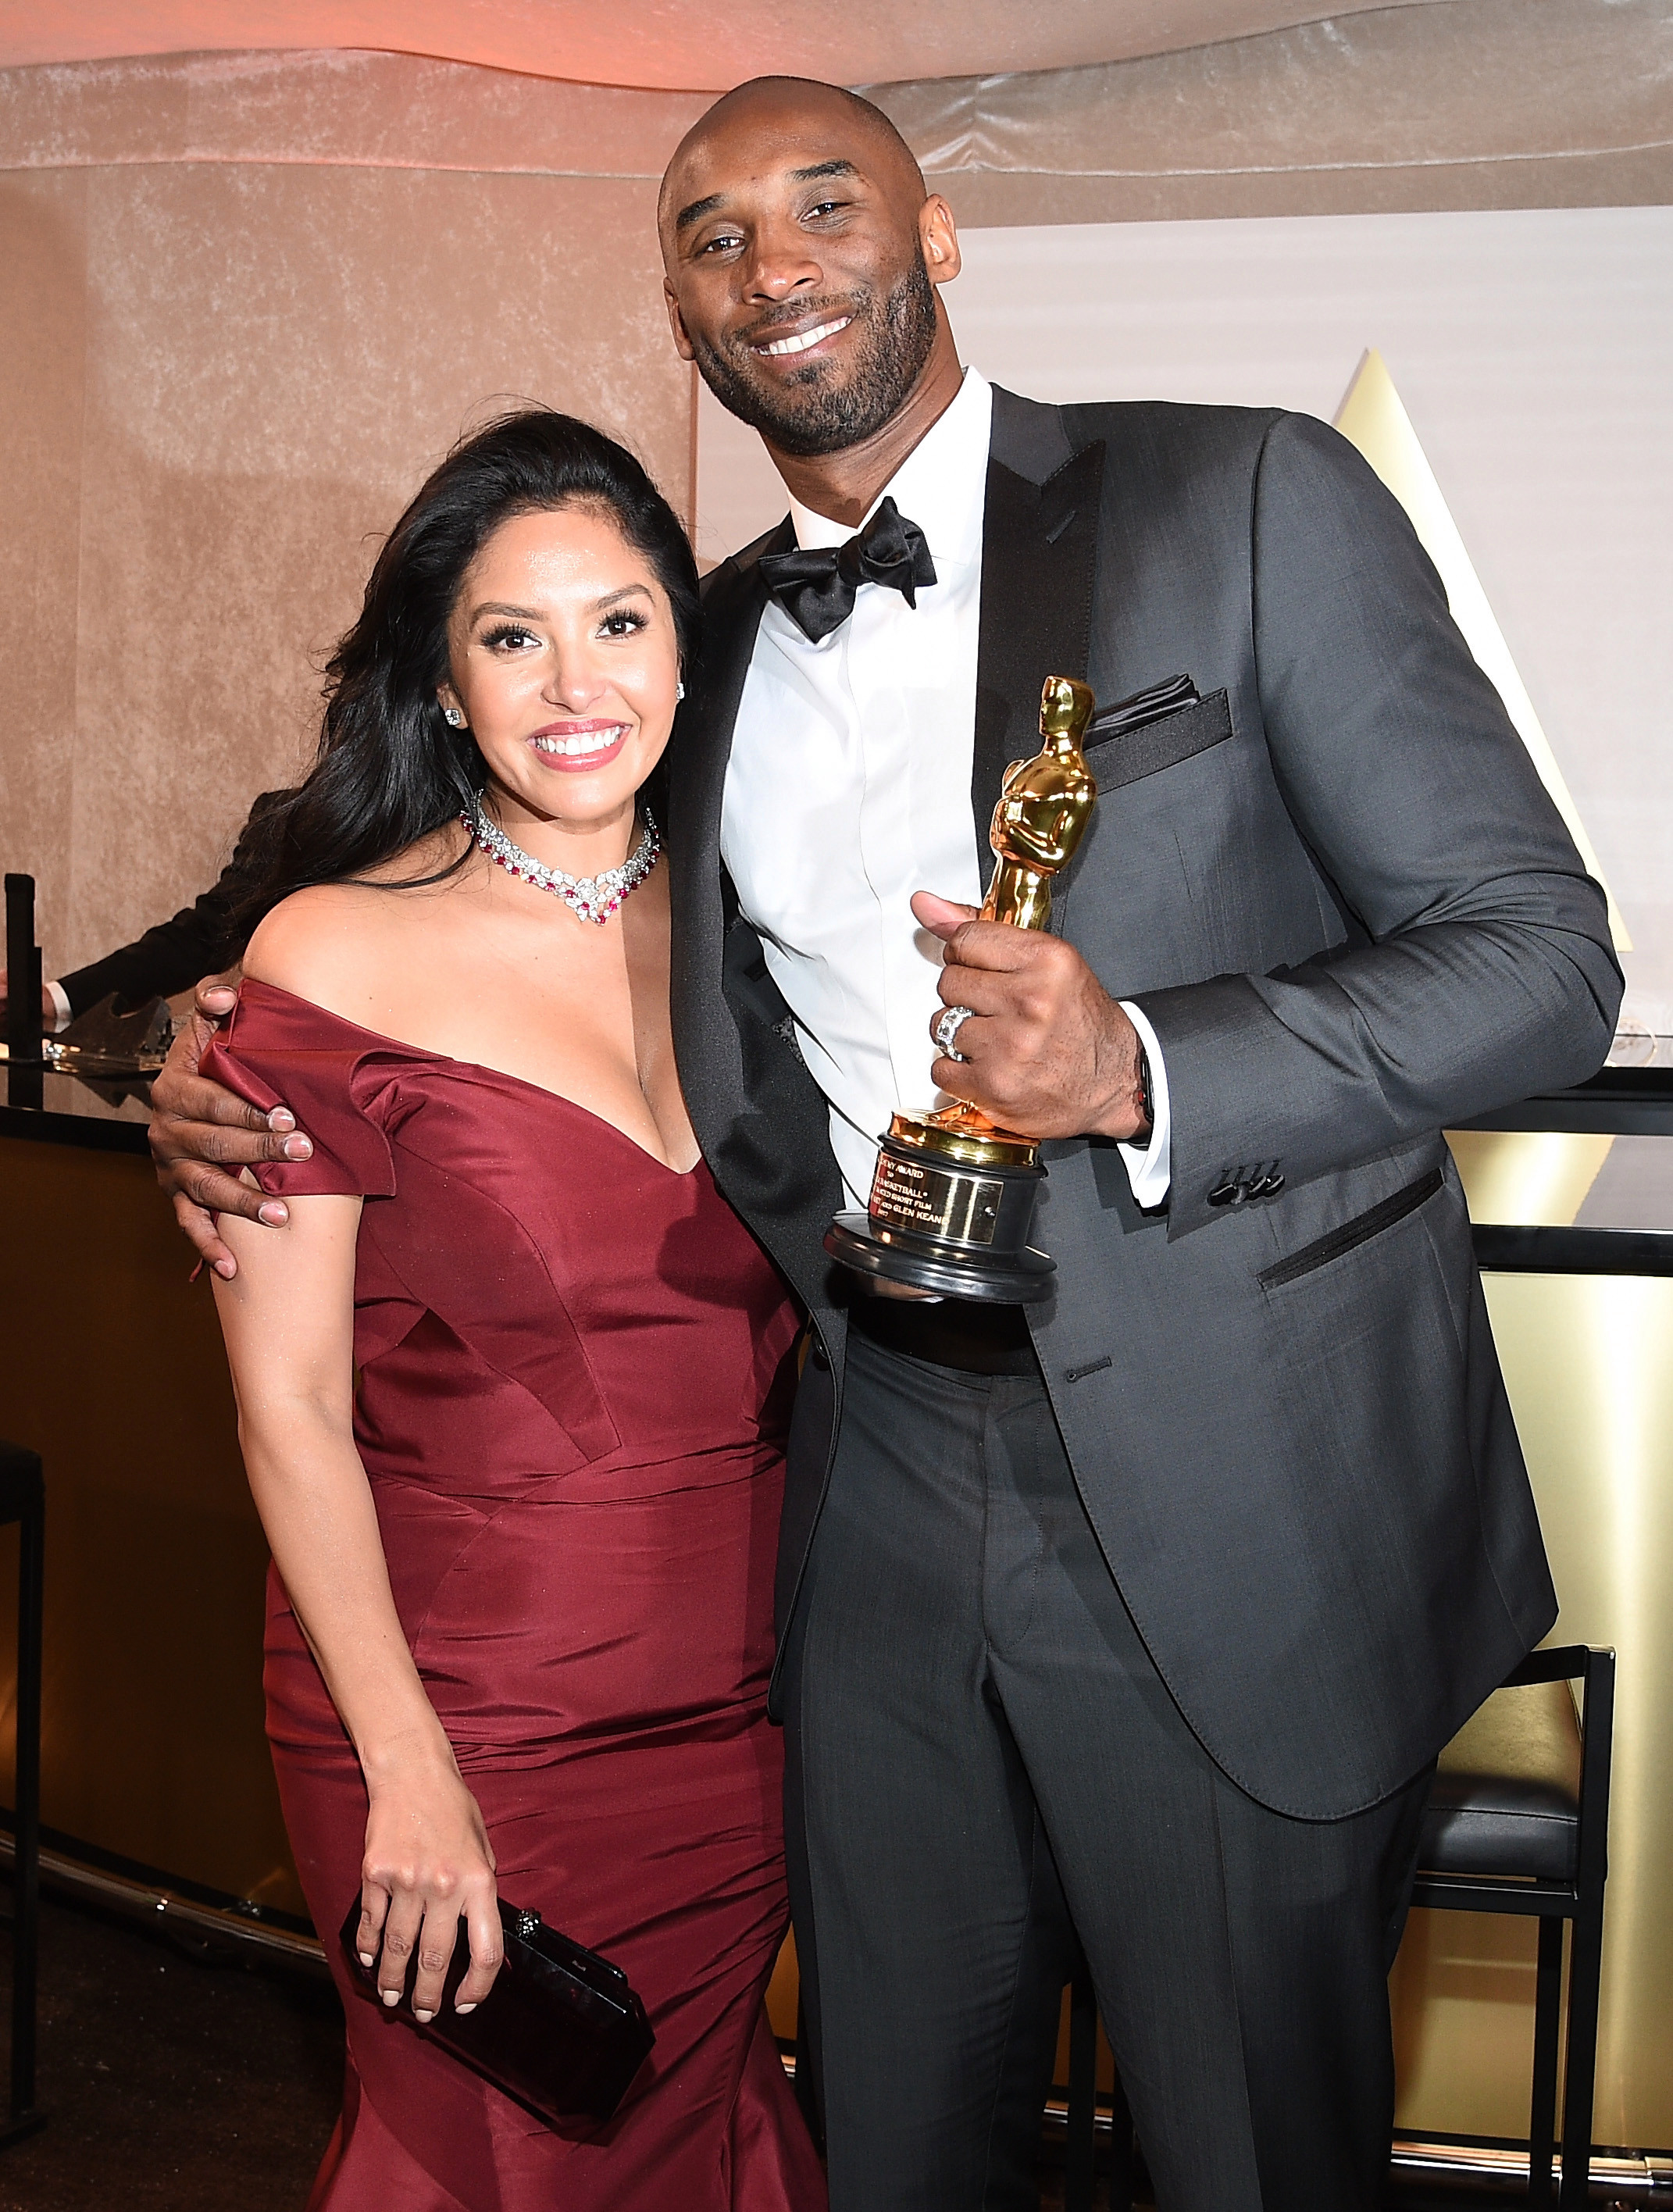 Kobe became the first basketball player to win an Oscar in 2018